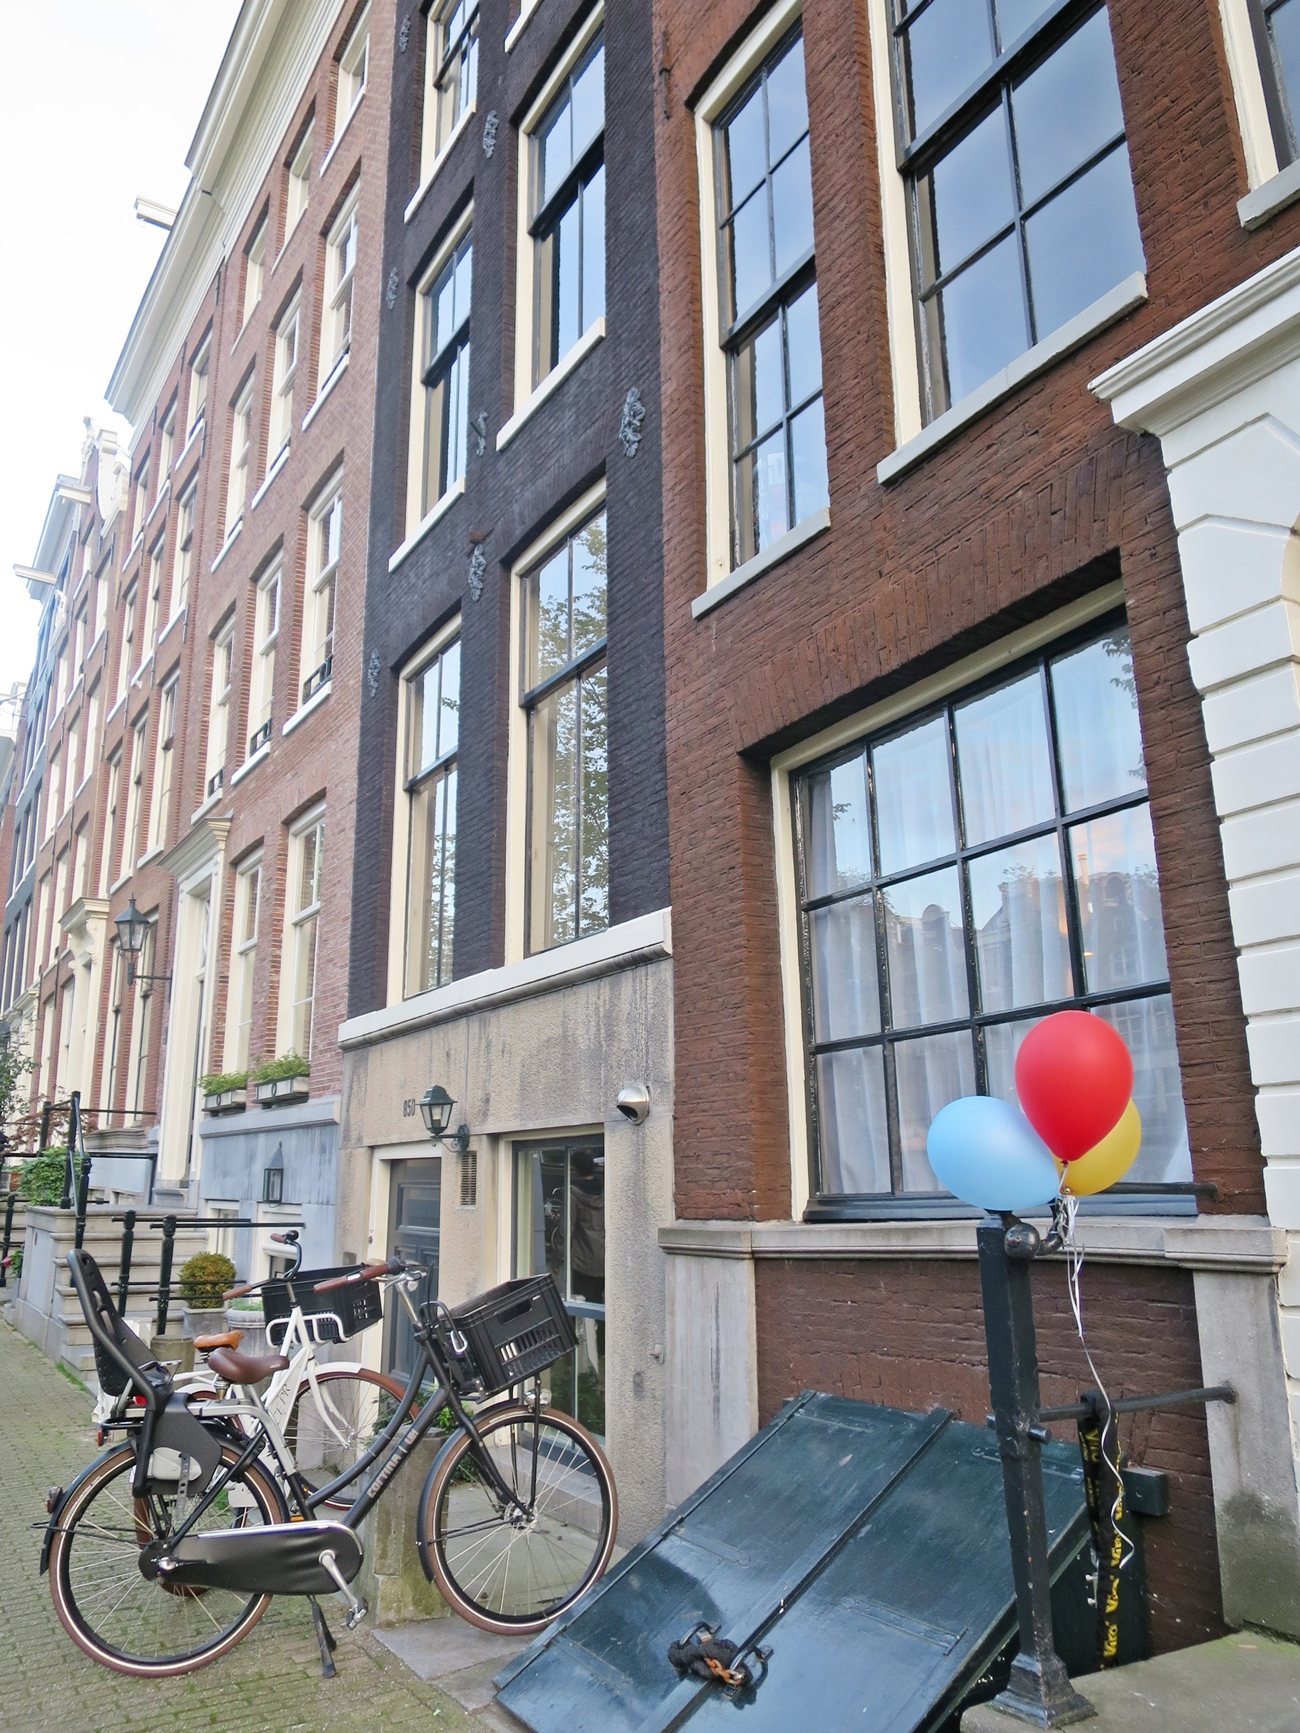 amsterdam-netherlands-day010-25